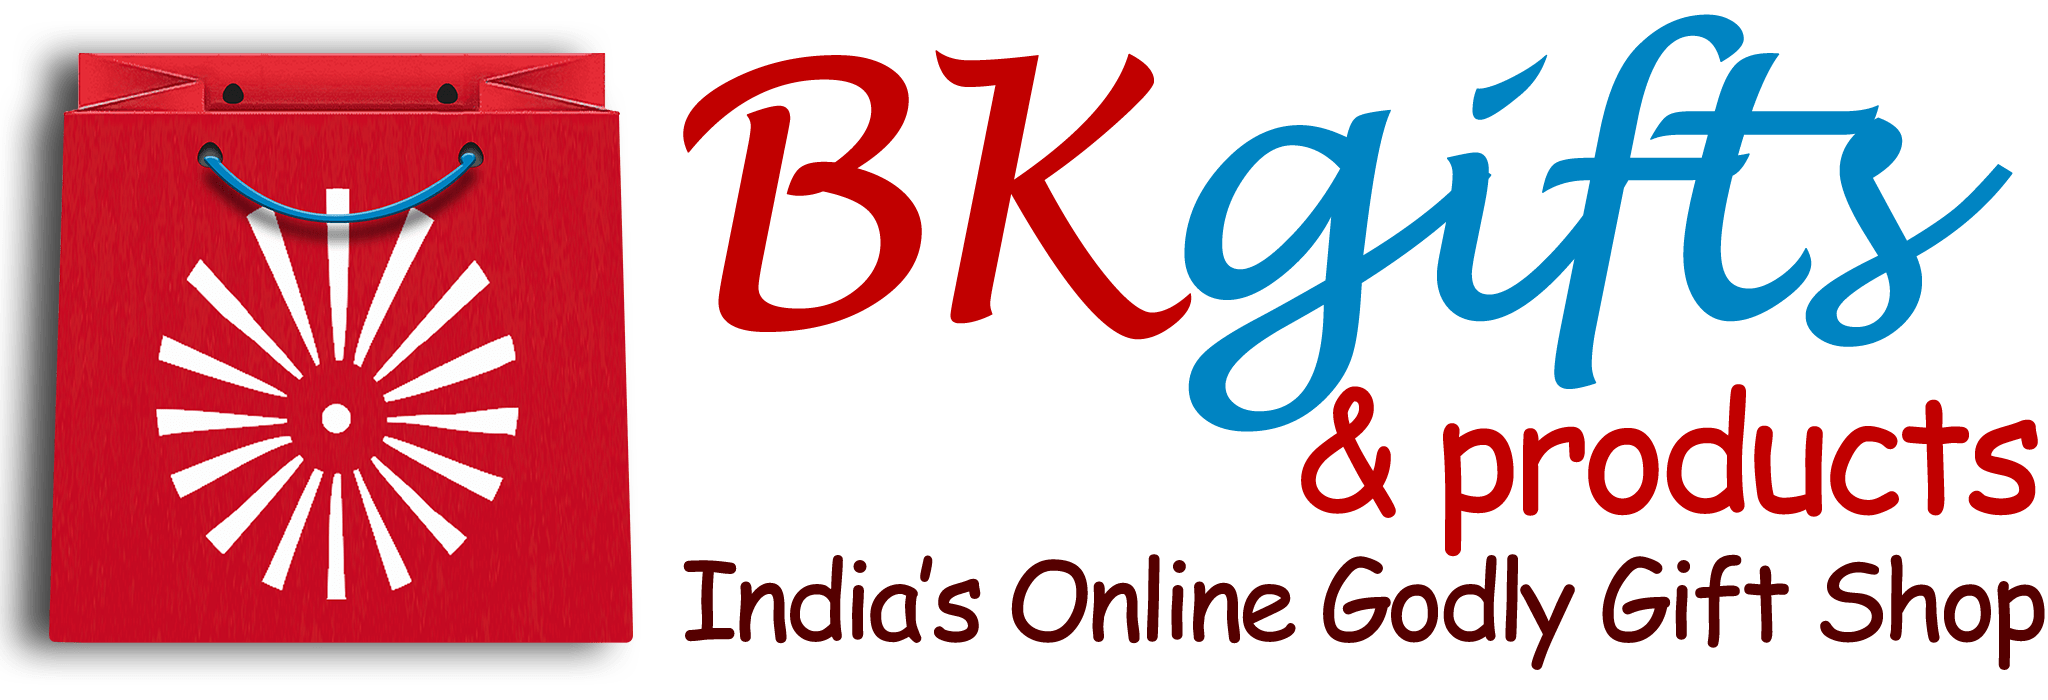 BK Gifts & Products